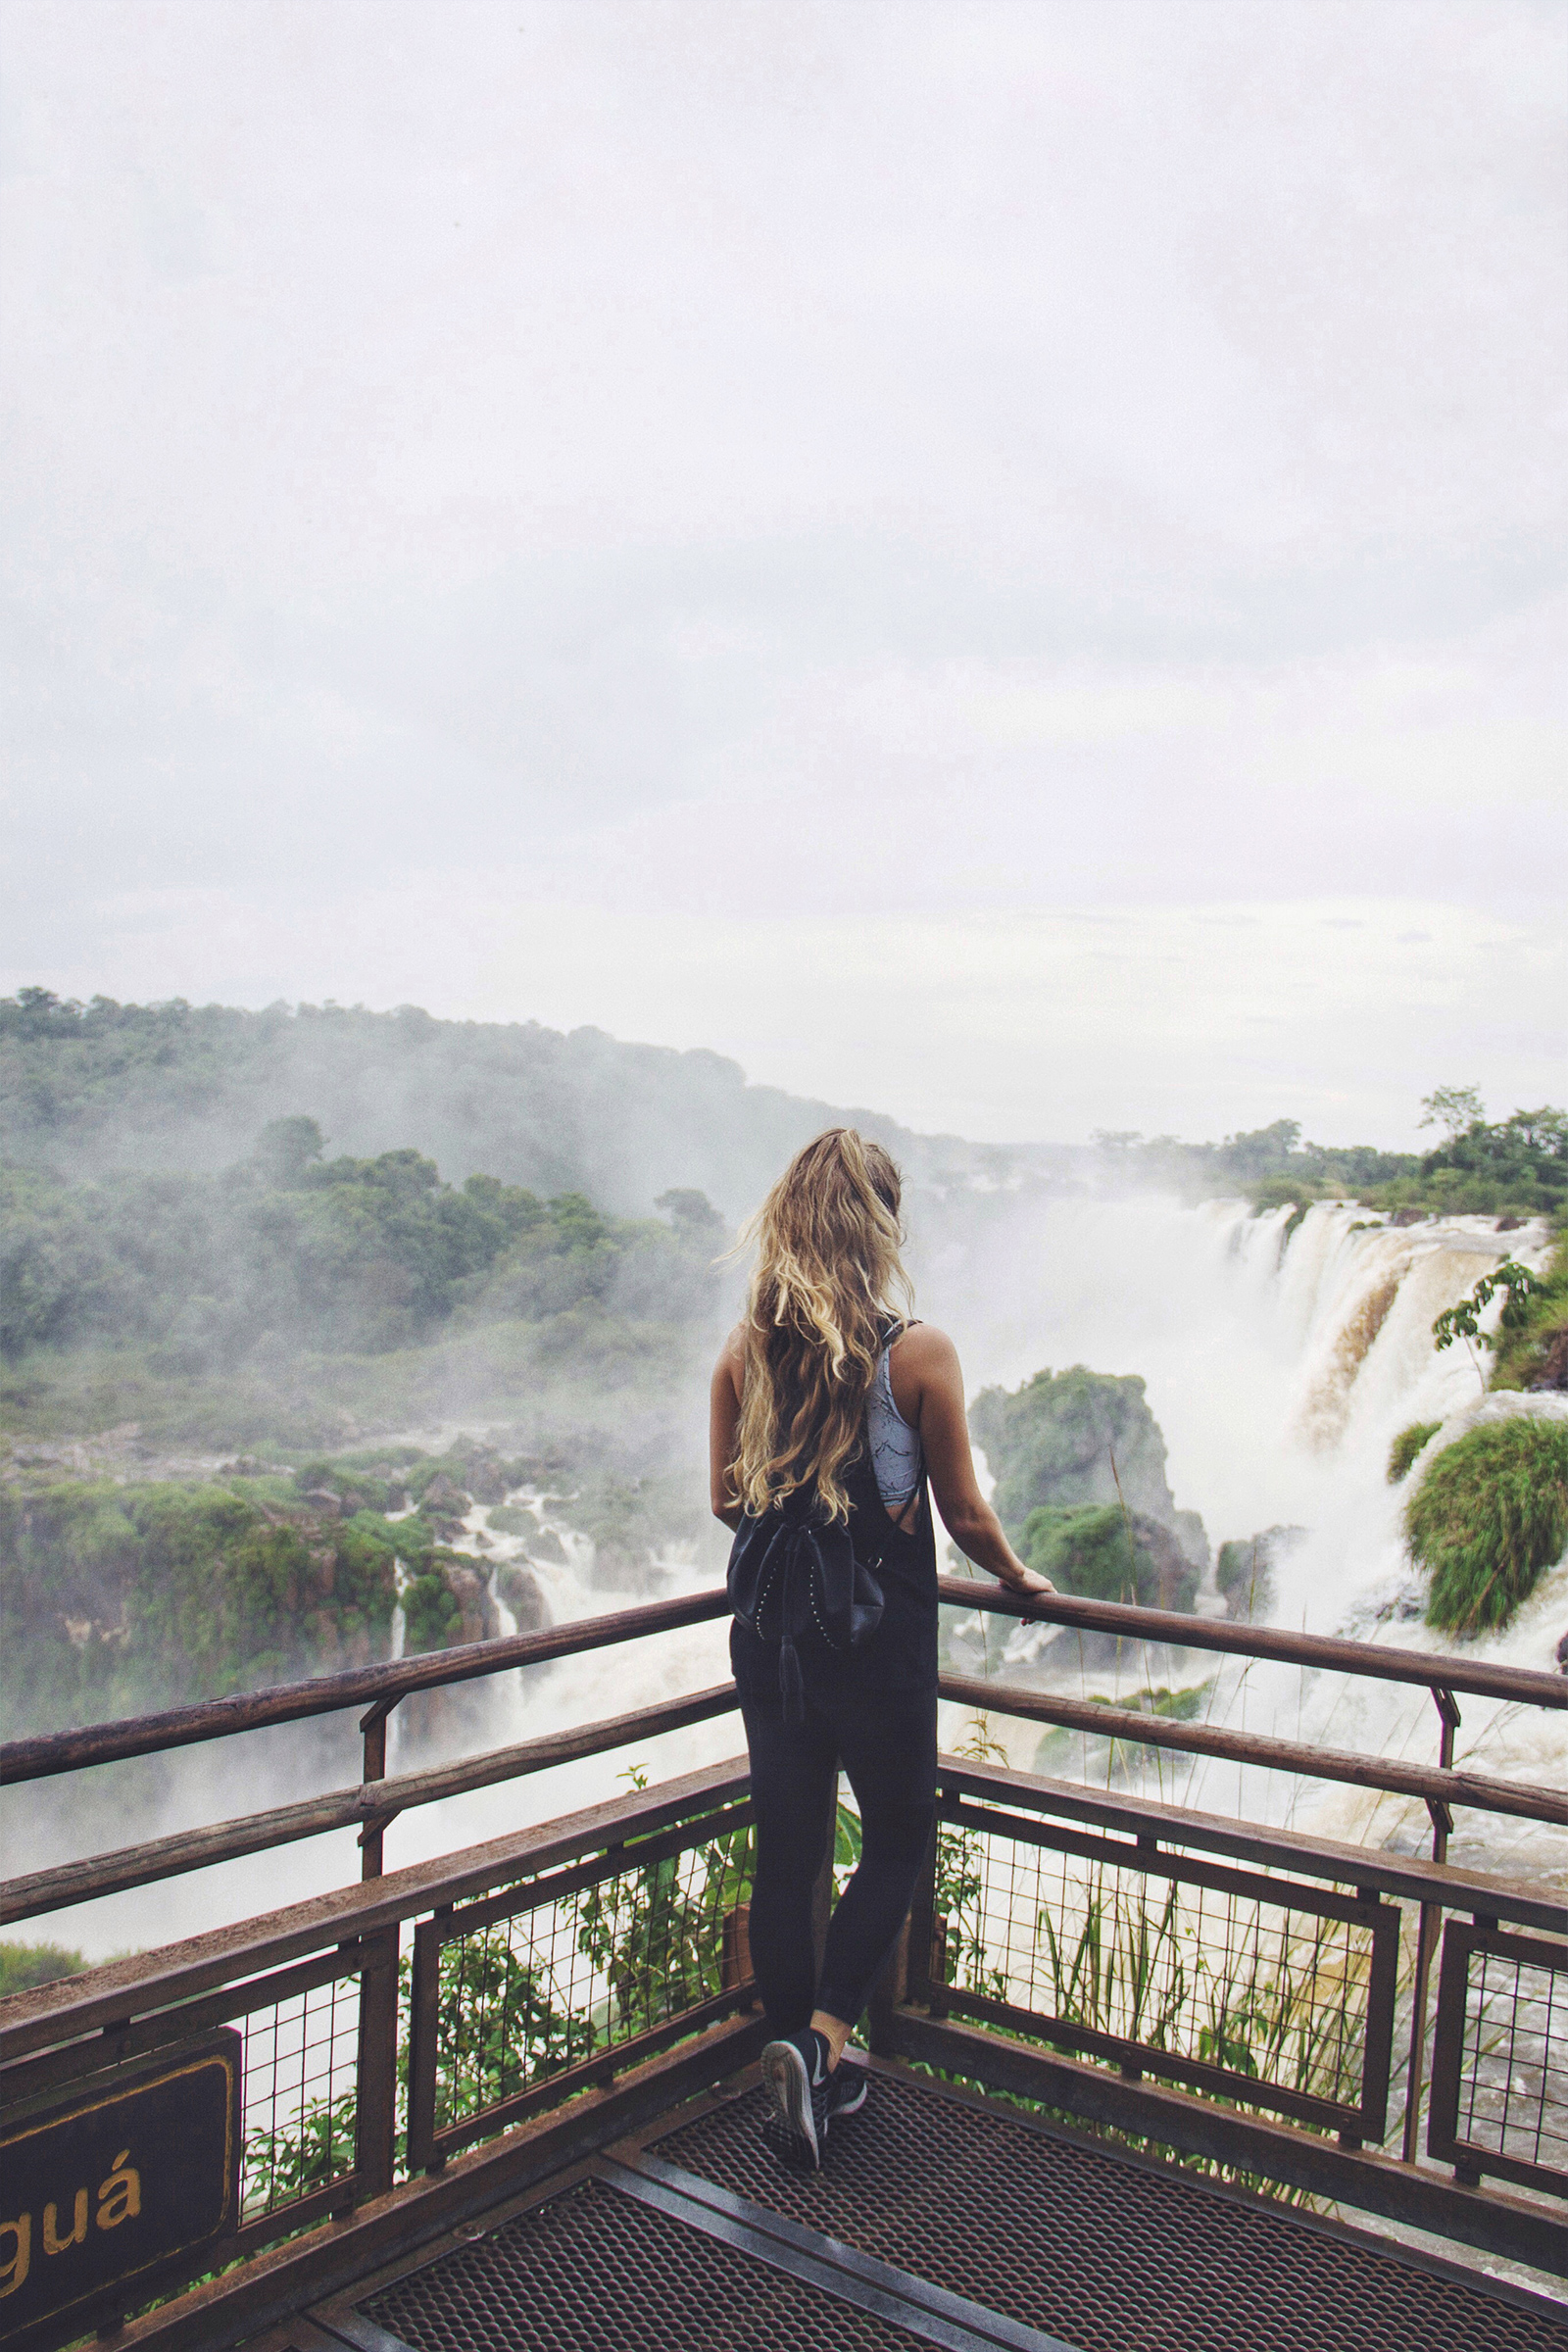 Iguazu Falls Brazil / Travel / Waterfalls / Hike / Nature / Kelly Fiance Creative